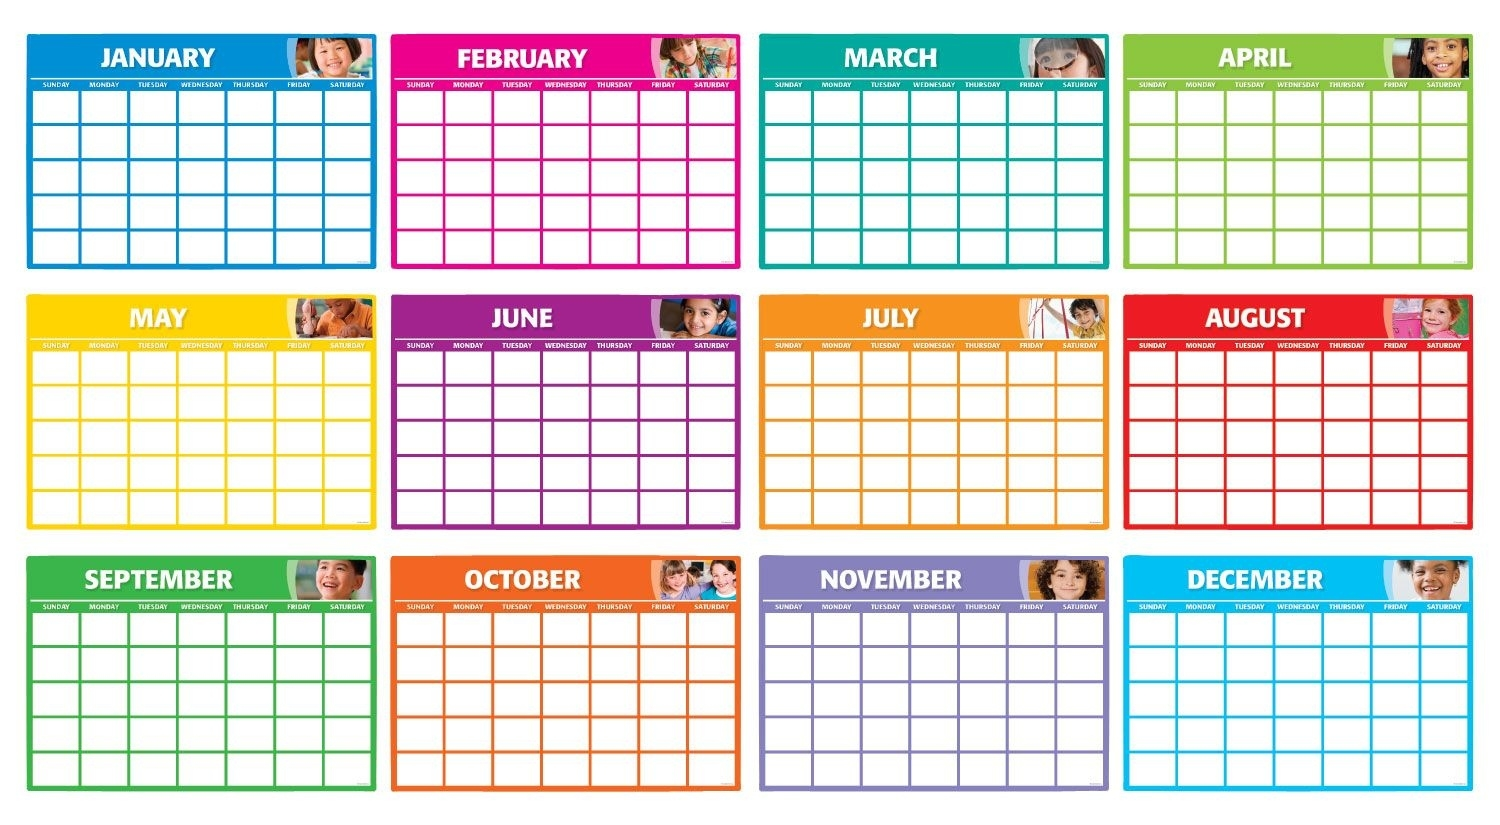 Fill-In Monthly Calendars Bulletin Board: Includes 12 Blank Write-On Monthly Calendar Bulletin Board